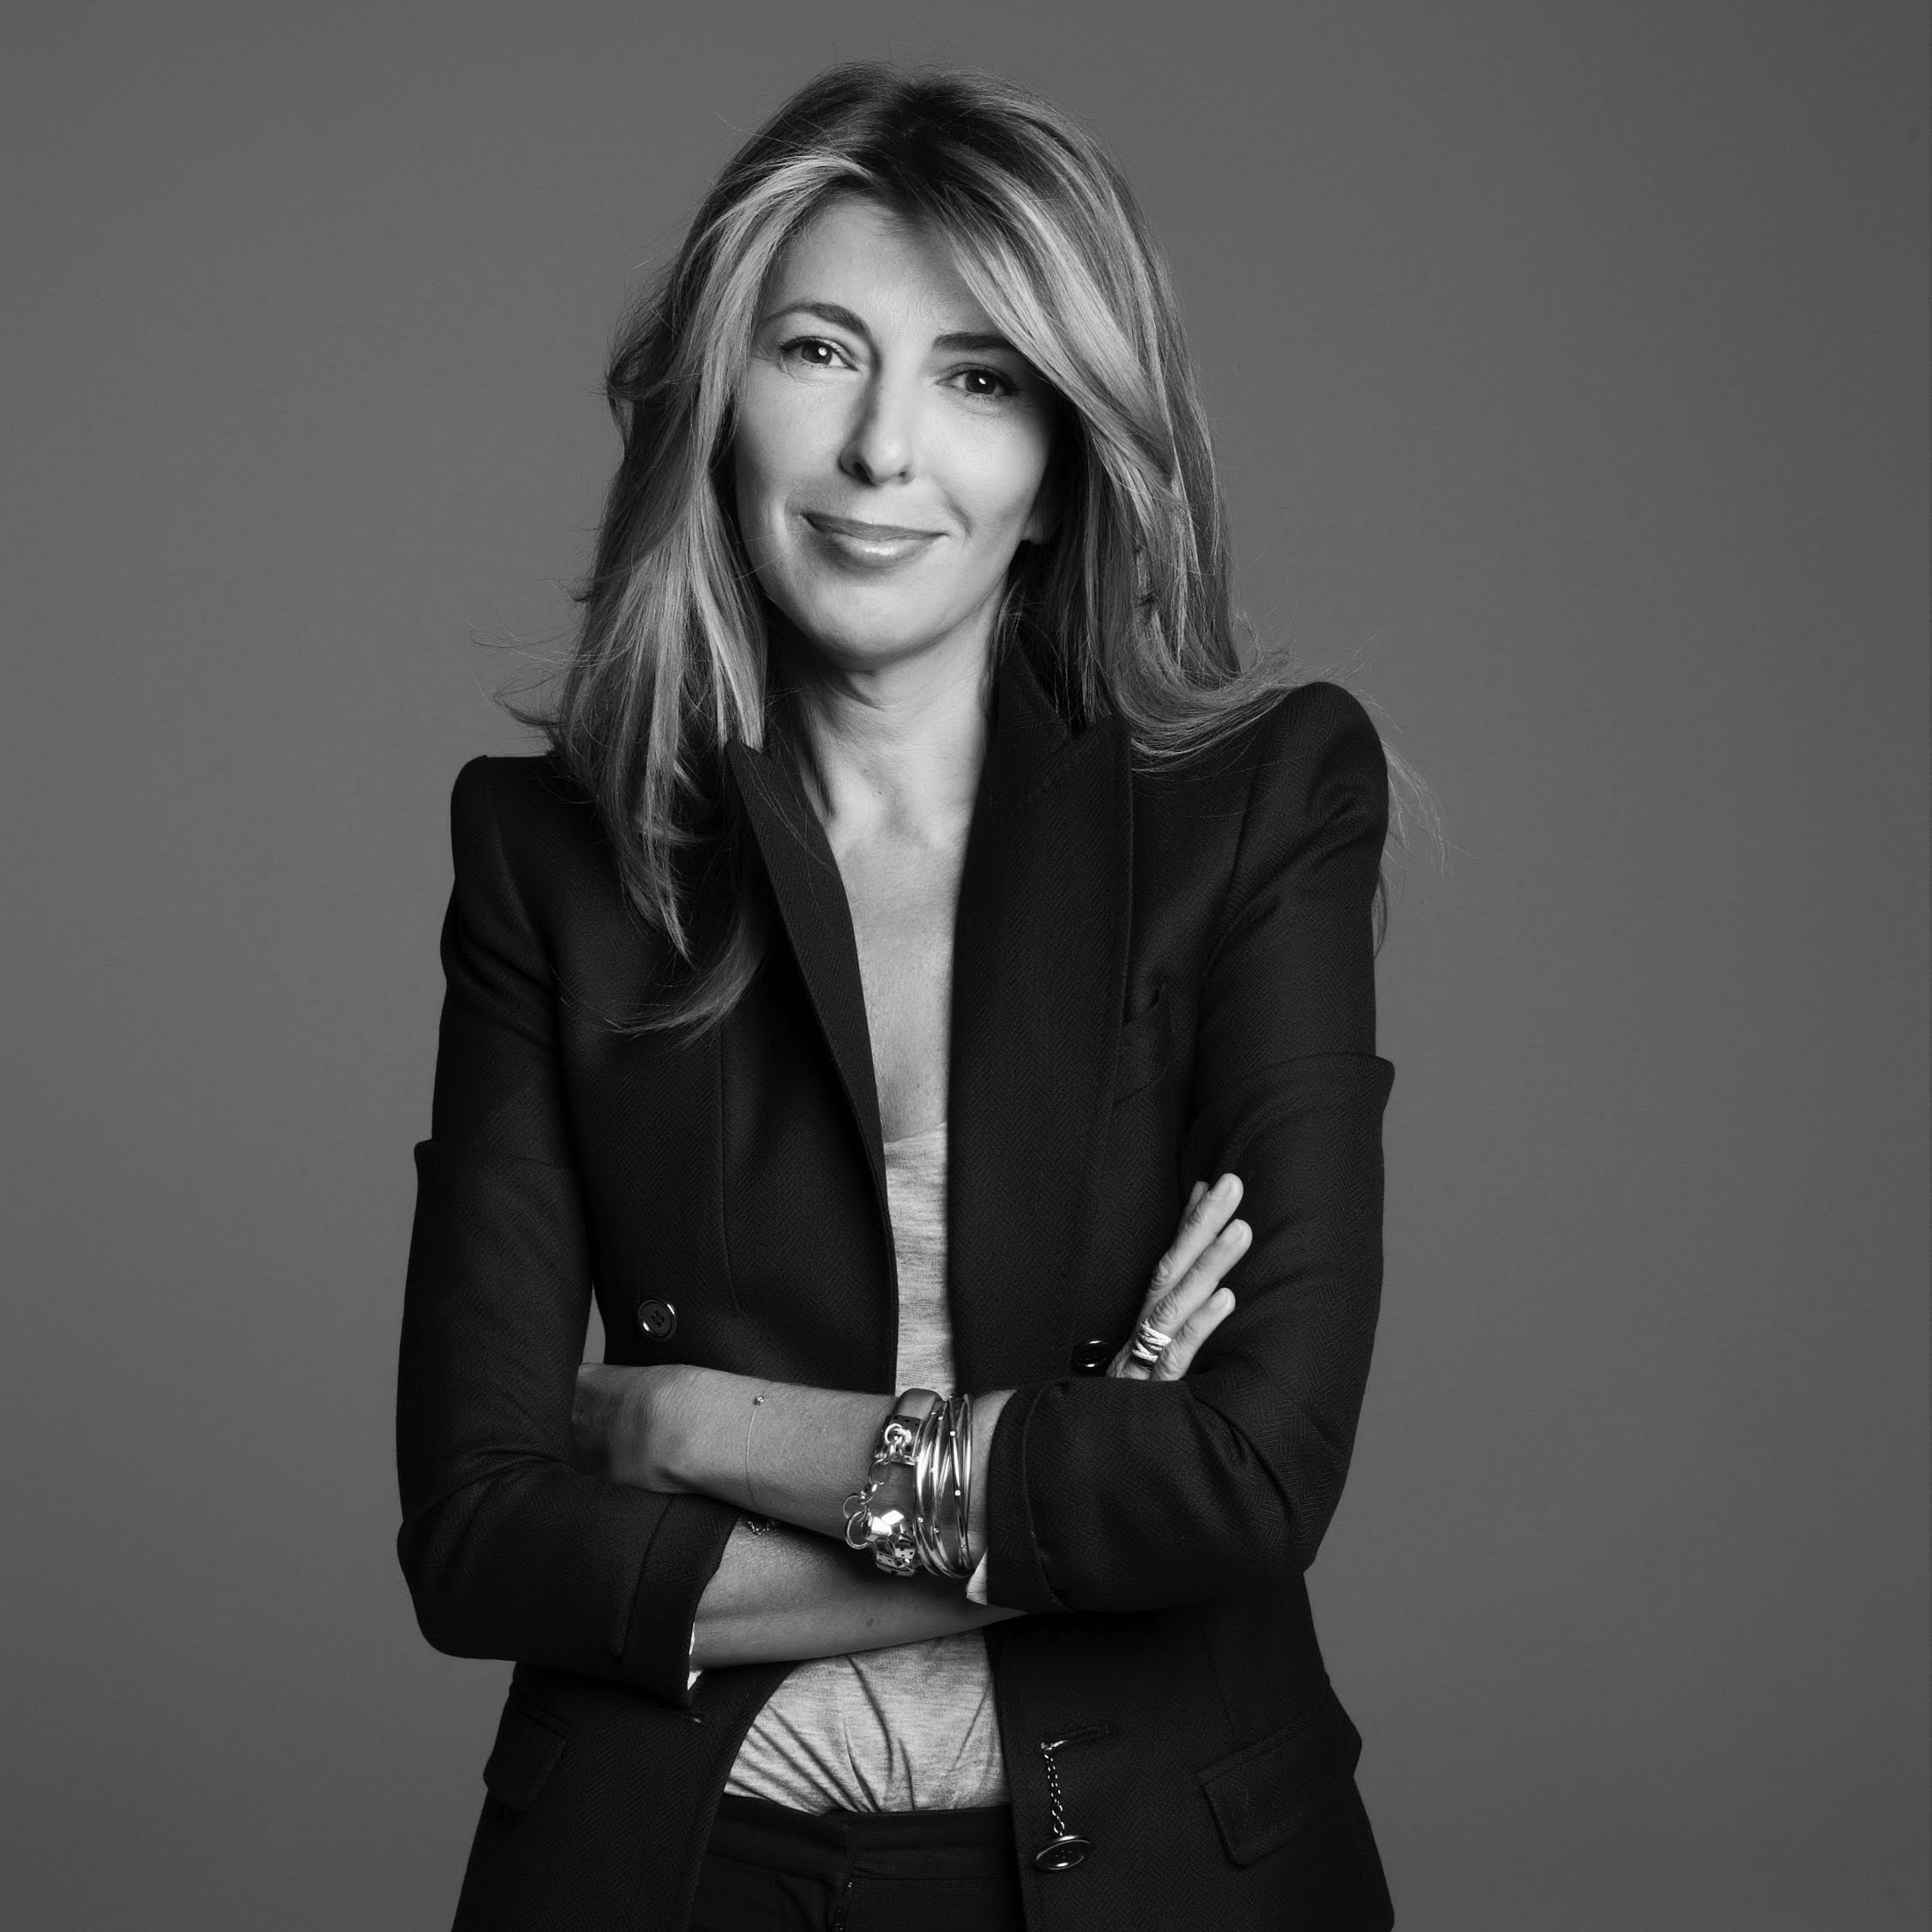 """Nina Garcia - Nina Garcia is the editor in chief of ELLE, the No. 1 fashion magazine brand in the world, with 46 international editions. She began her fashion media career at Mirabella and served as fashion director of ELLE from 2000 to 2008, after holding other roles with the title since 1995. Before her return to ELLE, Garcia was the creative director of Marie Claire, where she introduced franchise editorial sections and award-winning fashion content.Responsible for covering the designer fashion markets of New York, Milan and Paris, Garcia is an elite authority of the industry who has cultivated an adoring global fan-base of fashion """"insiders."""" She has hosted the red carpet for ABC's Oscar telecast, has been a judge on the Peabody Award-winning show Project Runway since it launched in 2004, and serves as a style expert on programs including Good Morning America, The View, Today, CNN and more.Garcia is a New York Times bestselling author of four books on style. She was honored by Fashion Group International in 2010 with the prestigious Oracle Award and in the same year, received the Individual Achievement award from the Hispanic Federation. In 2015, Garcia received the Champion of Educational Excellence Award from the Oliver Scholars Program. She accepted The Daily's Magazine of the Year Award in 2018 after her first year as Editor-in-Chief of ELLE.Born in Barranquilla, Colombia, she is a graduate of Boston University and Fashion Institute of Technology."""